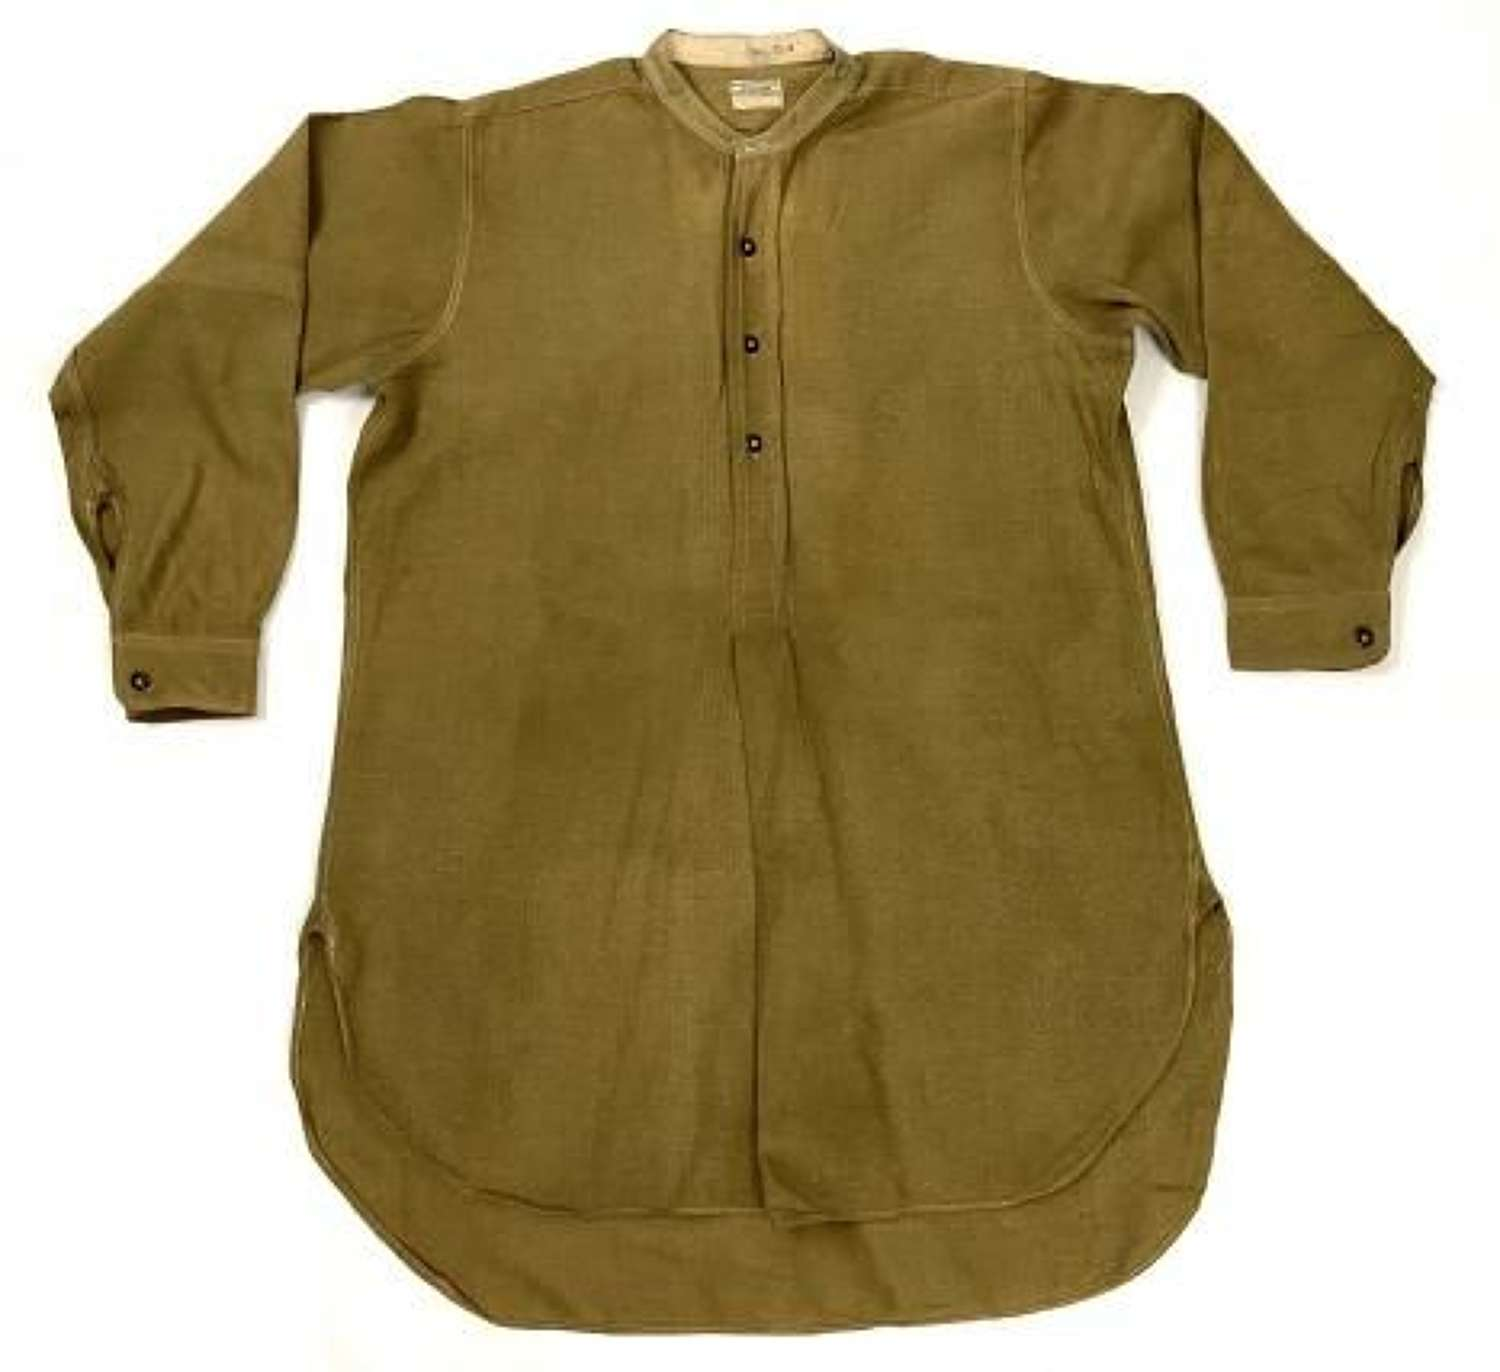 Original WW2 British Army Officers Collarless Shirt + Collar by 'W. M. Anderson & Sons Ltd'